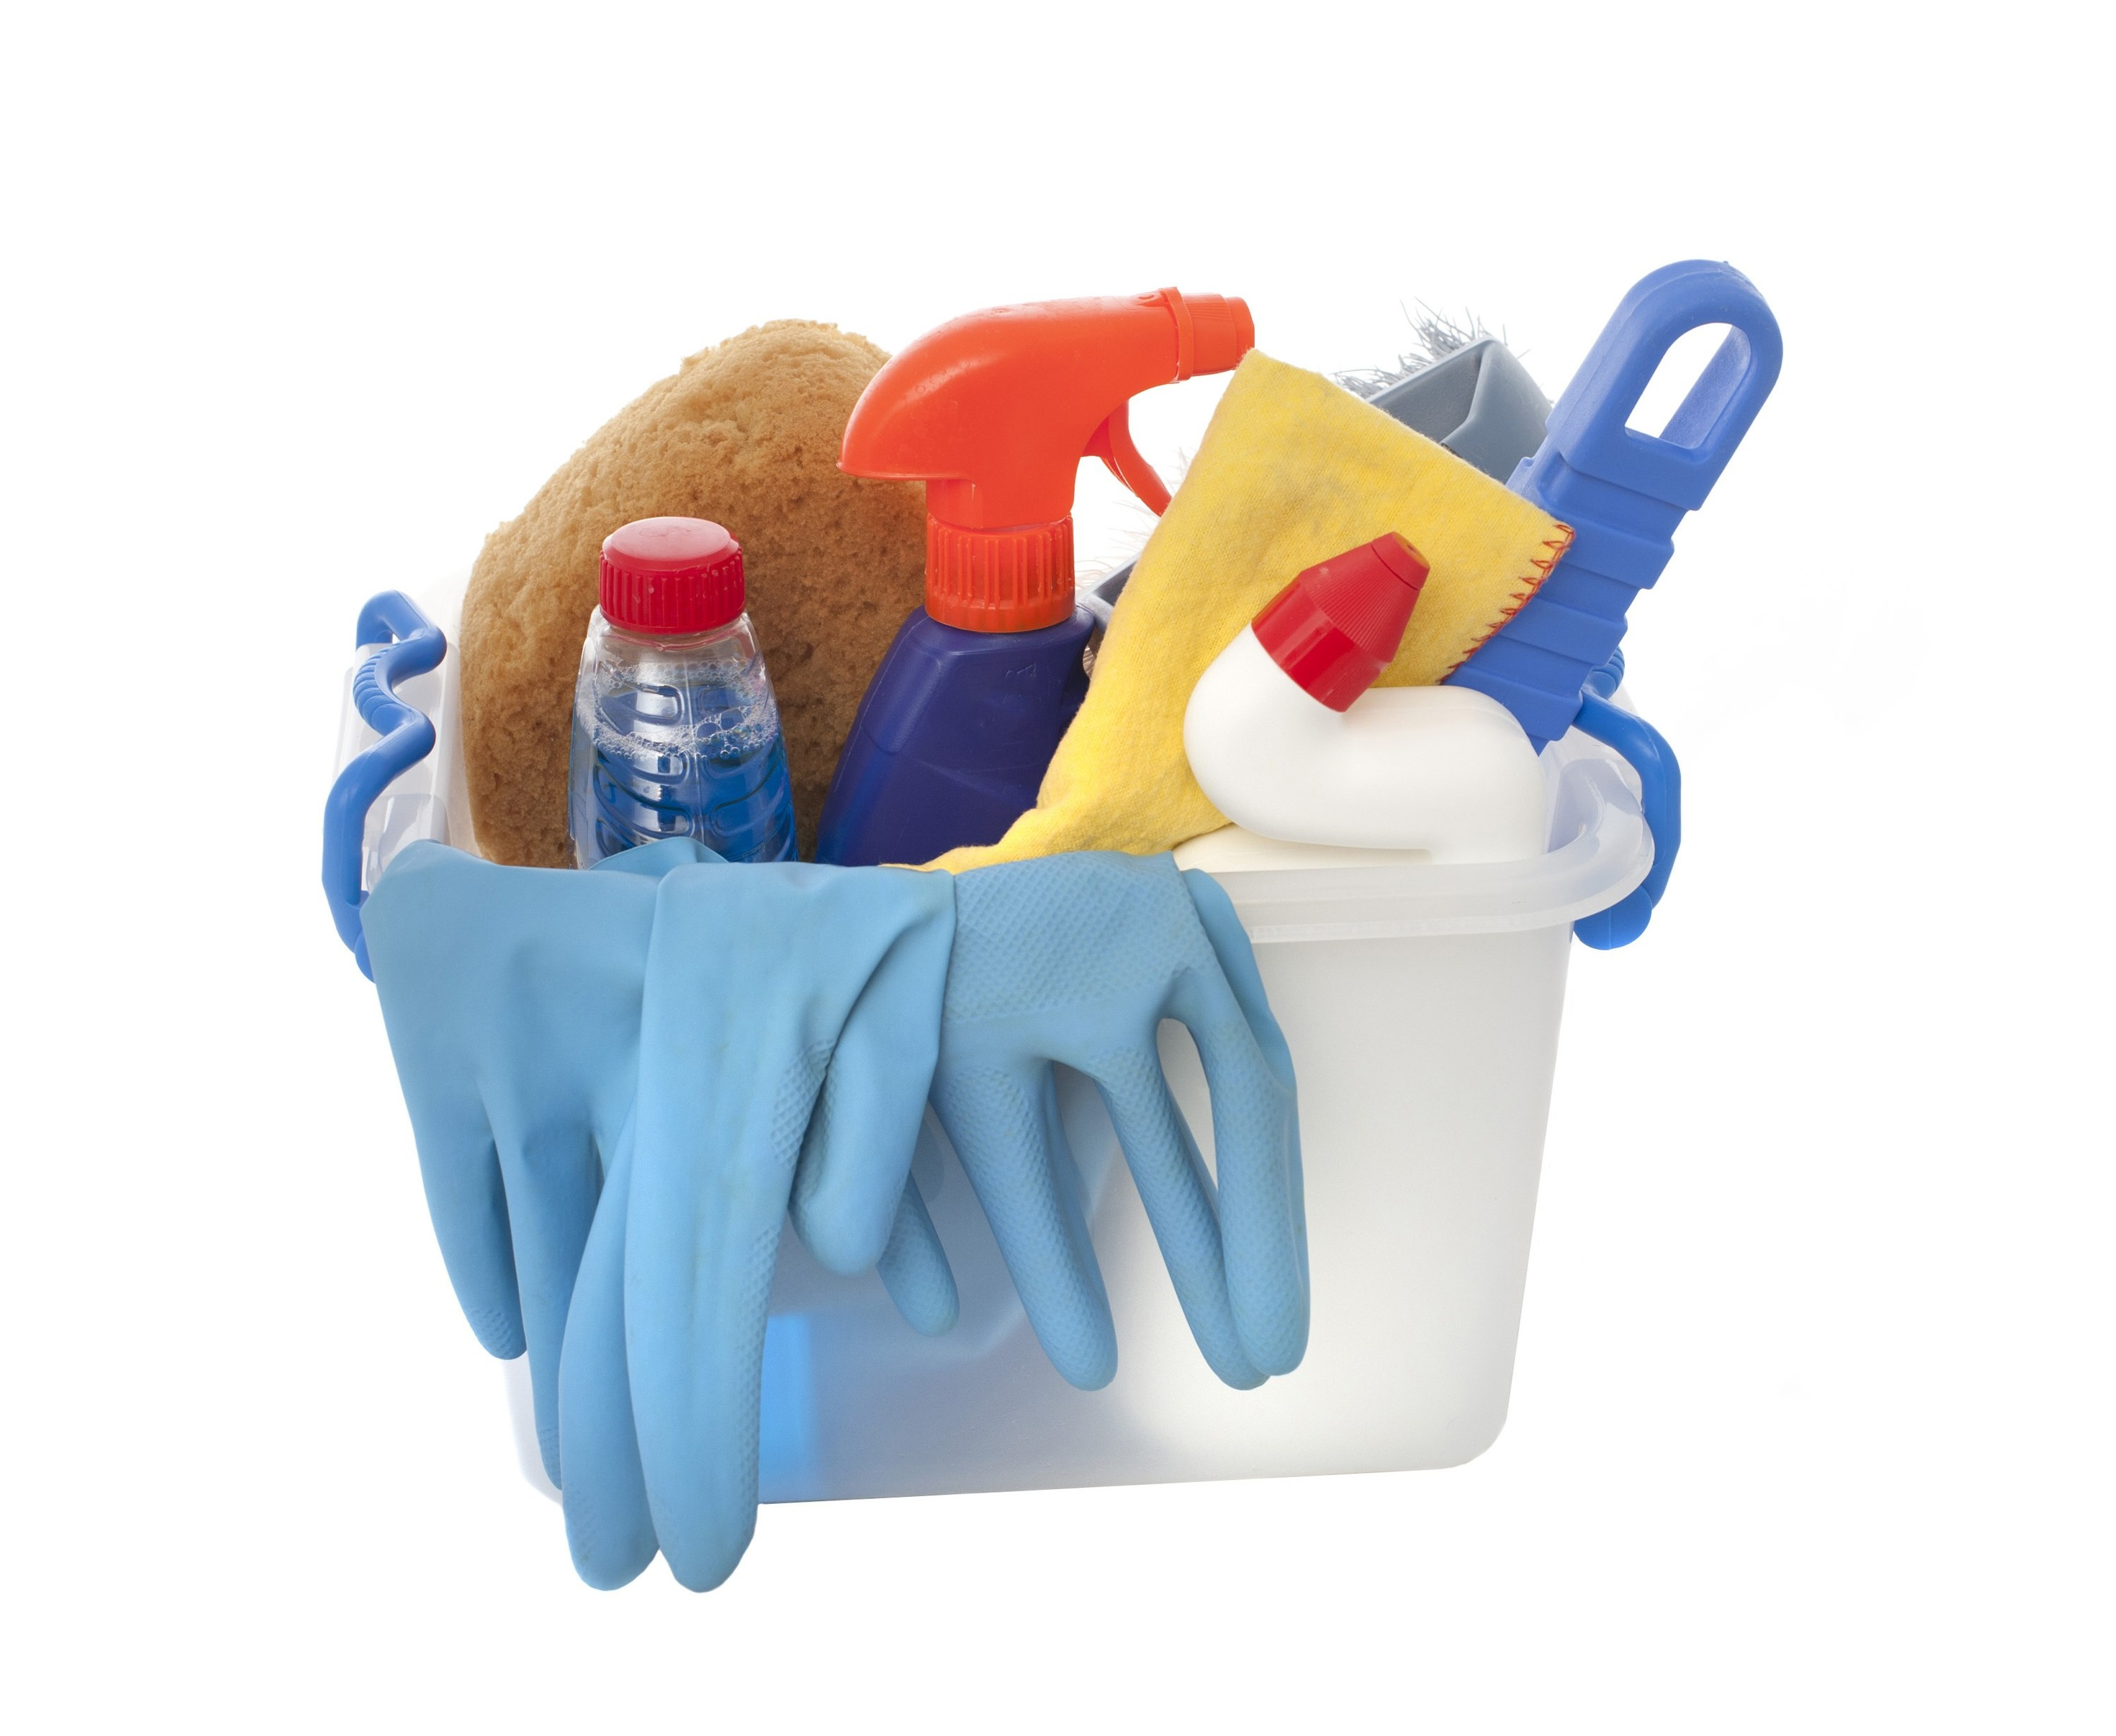 Chlorine is used as a disinfectant in many cleaning chemicals